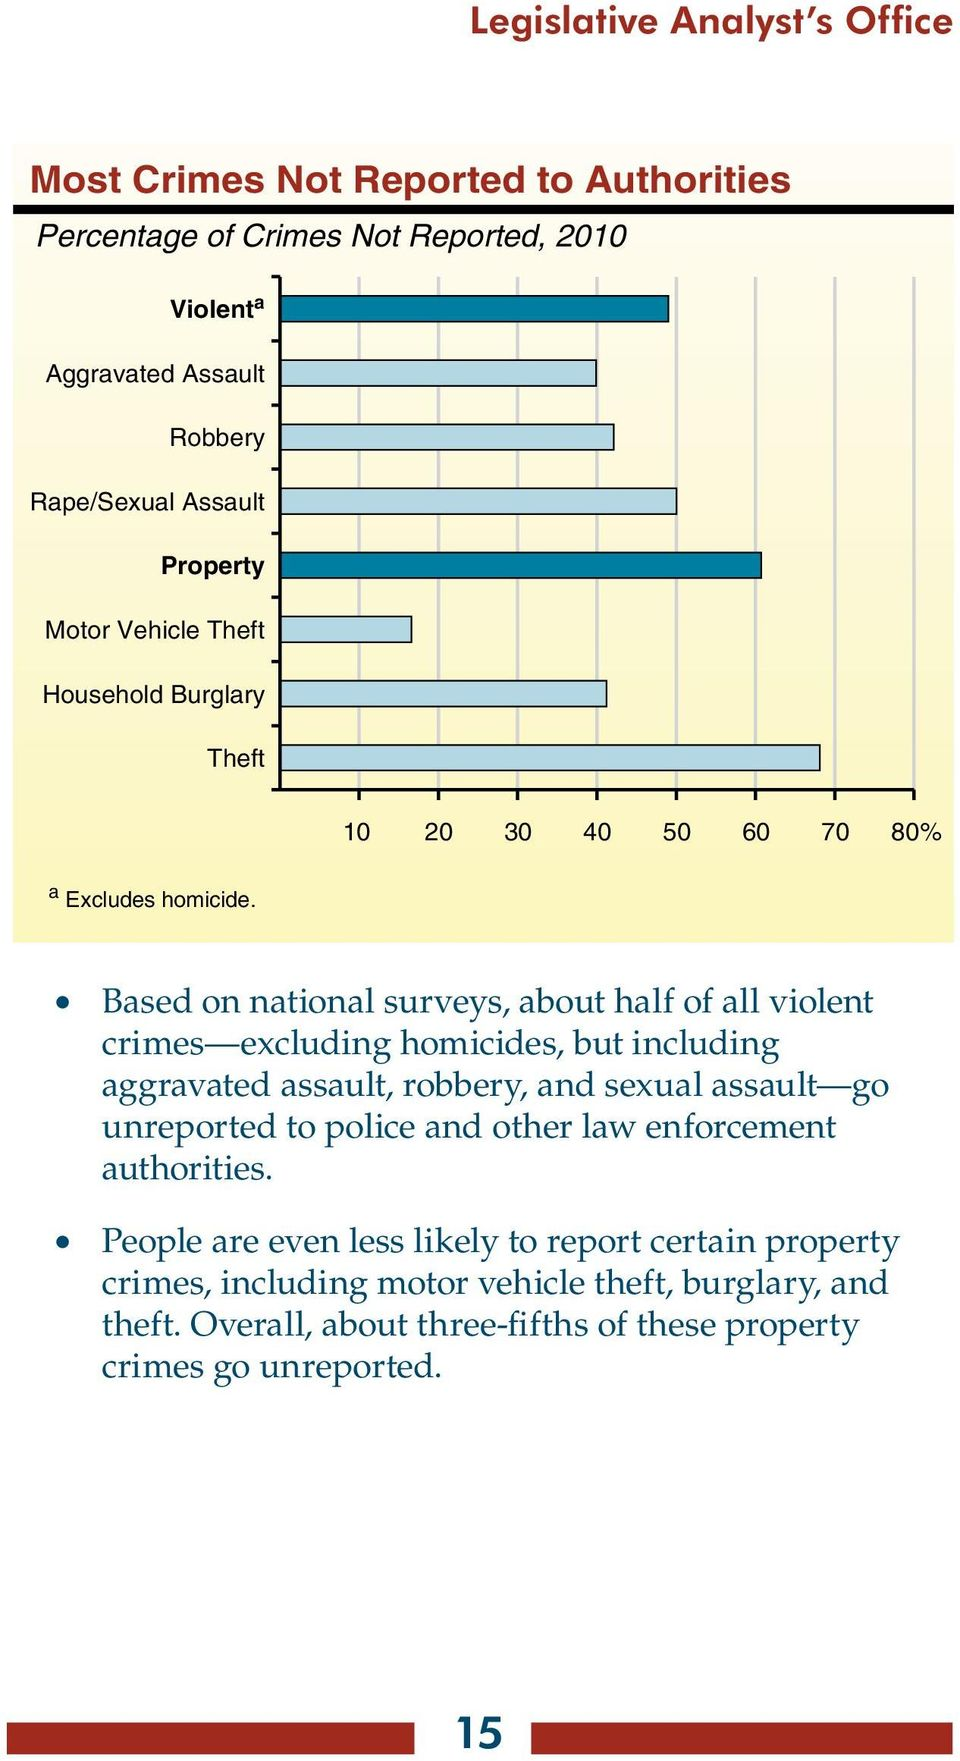 Based on national surveys, about half of all violent crimes excluding homicides, but including aggravated assault, robbery, and sexual assault go unreported to police